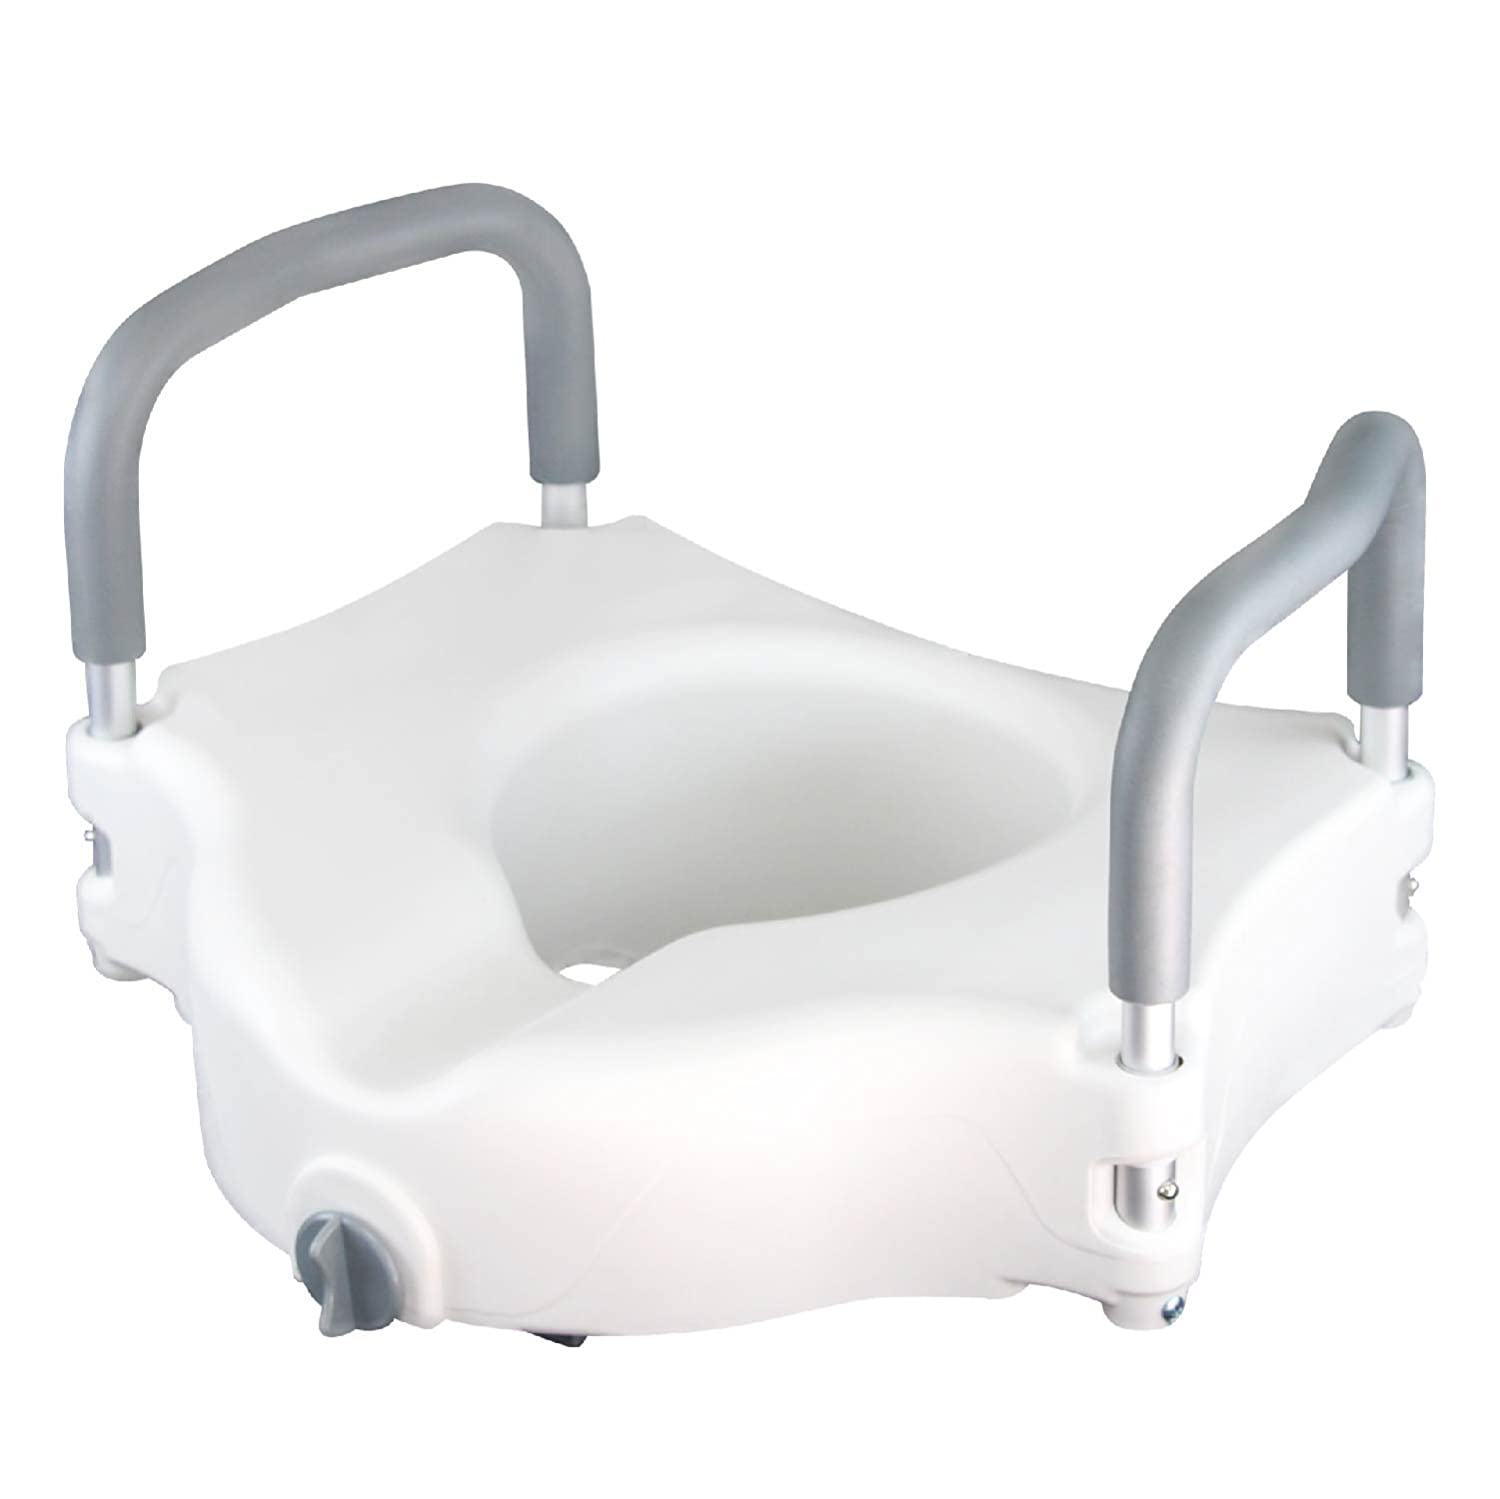 Bathroom Seats For Disabled The Advantages Of Bath Seats